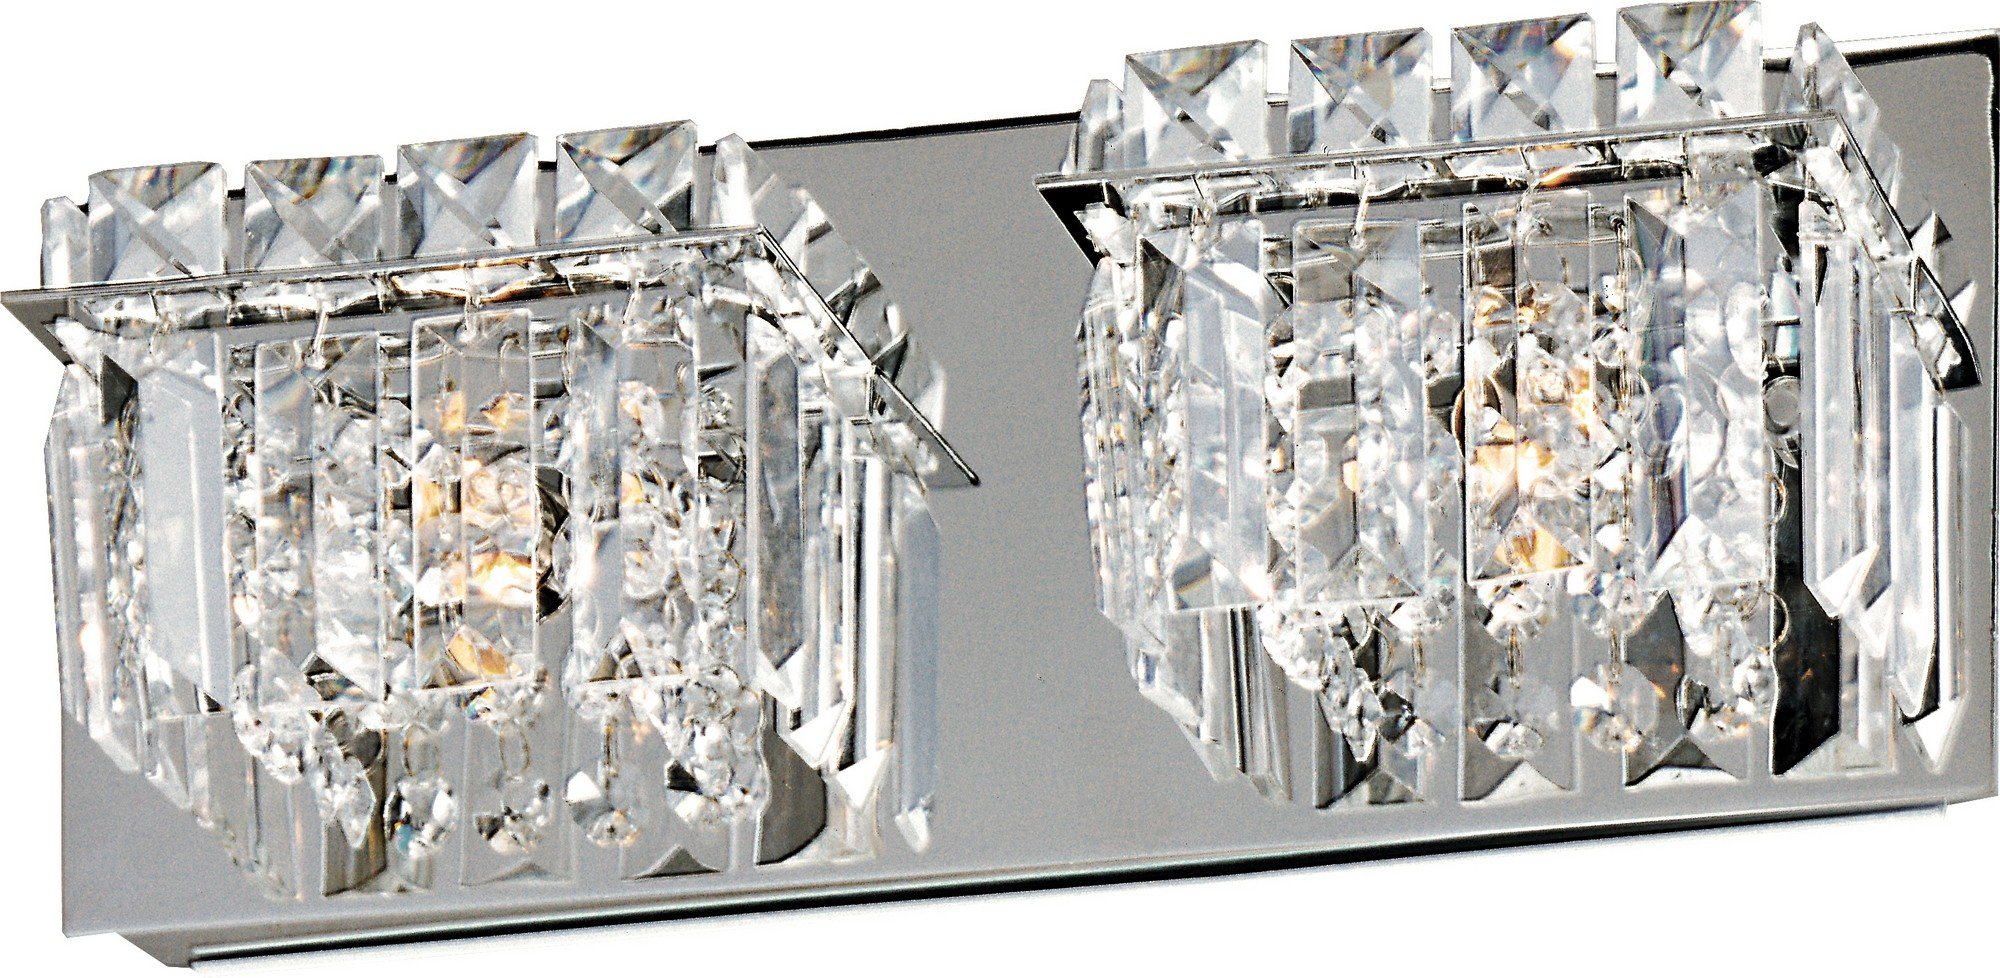 ET2 E23252-20PC Bangle 2-Light Bath Vanity, Polished Chrome Finish, Crystal Glass, G9 Xenon Bulb, 159W Max., Dry Safety Rated, 2900K Color Temp., Electronic Low Voltage (ELV) Dimmable, Glass Shade Material, 320 Rated Lumens